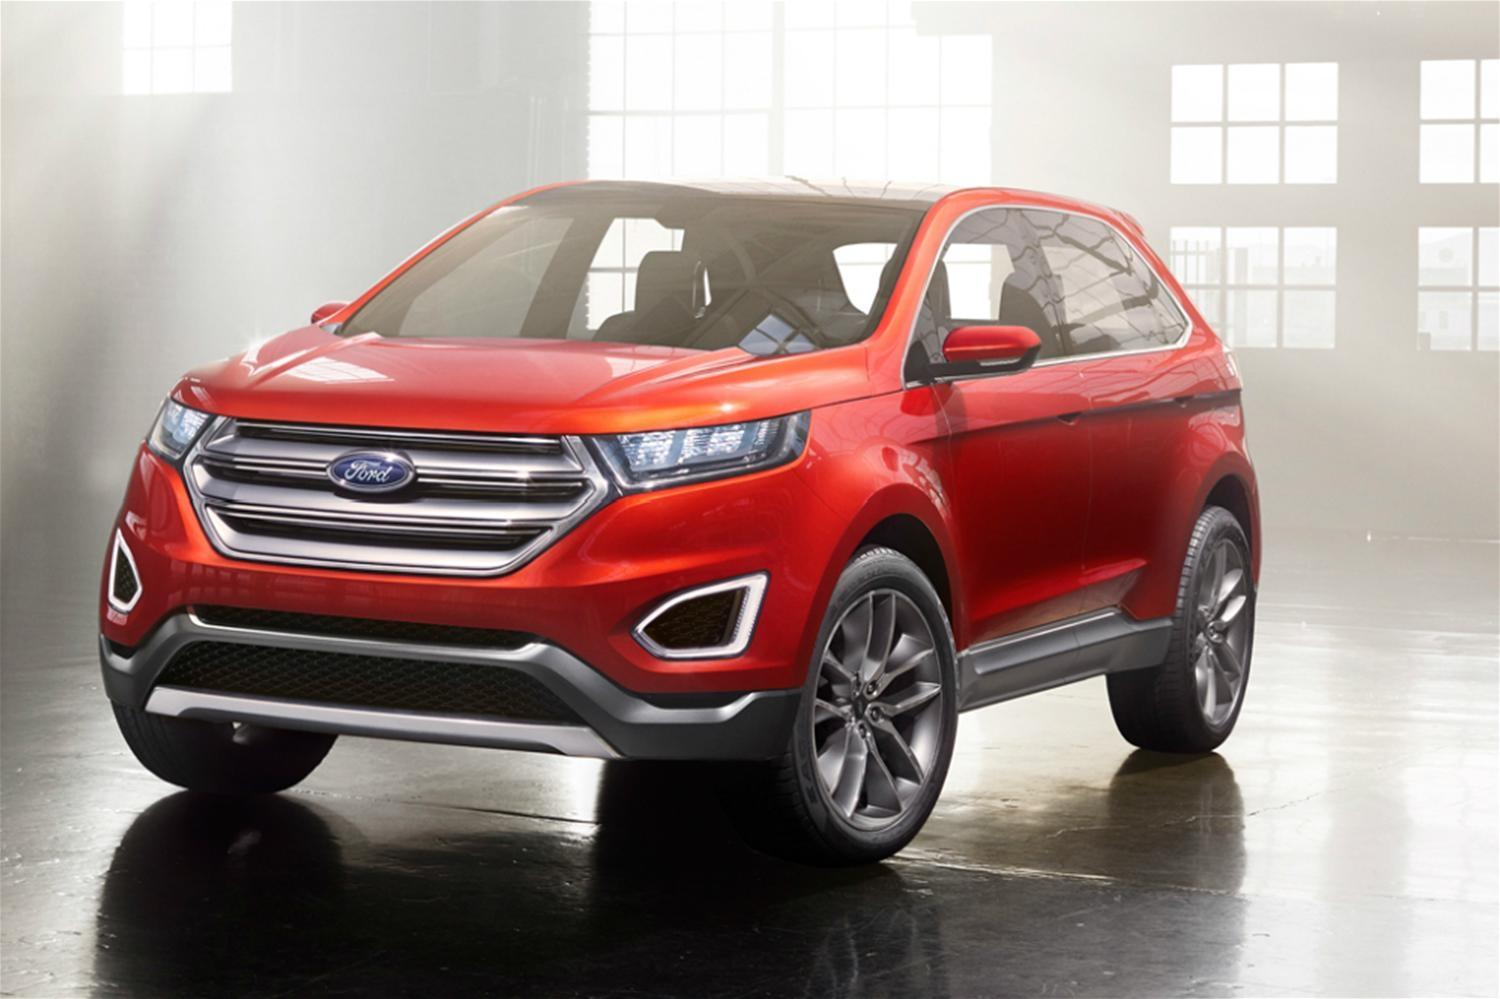 Ford Grows Ambitious Future Product Plans